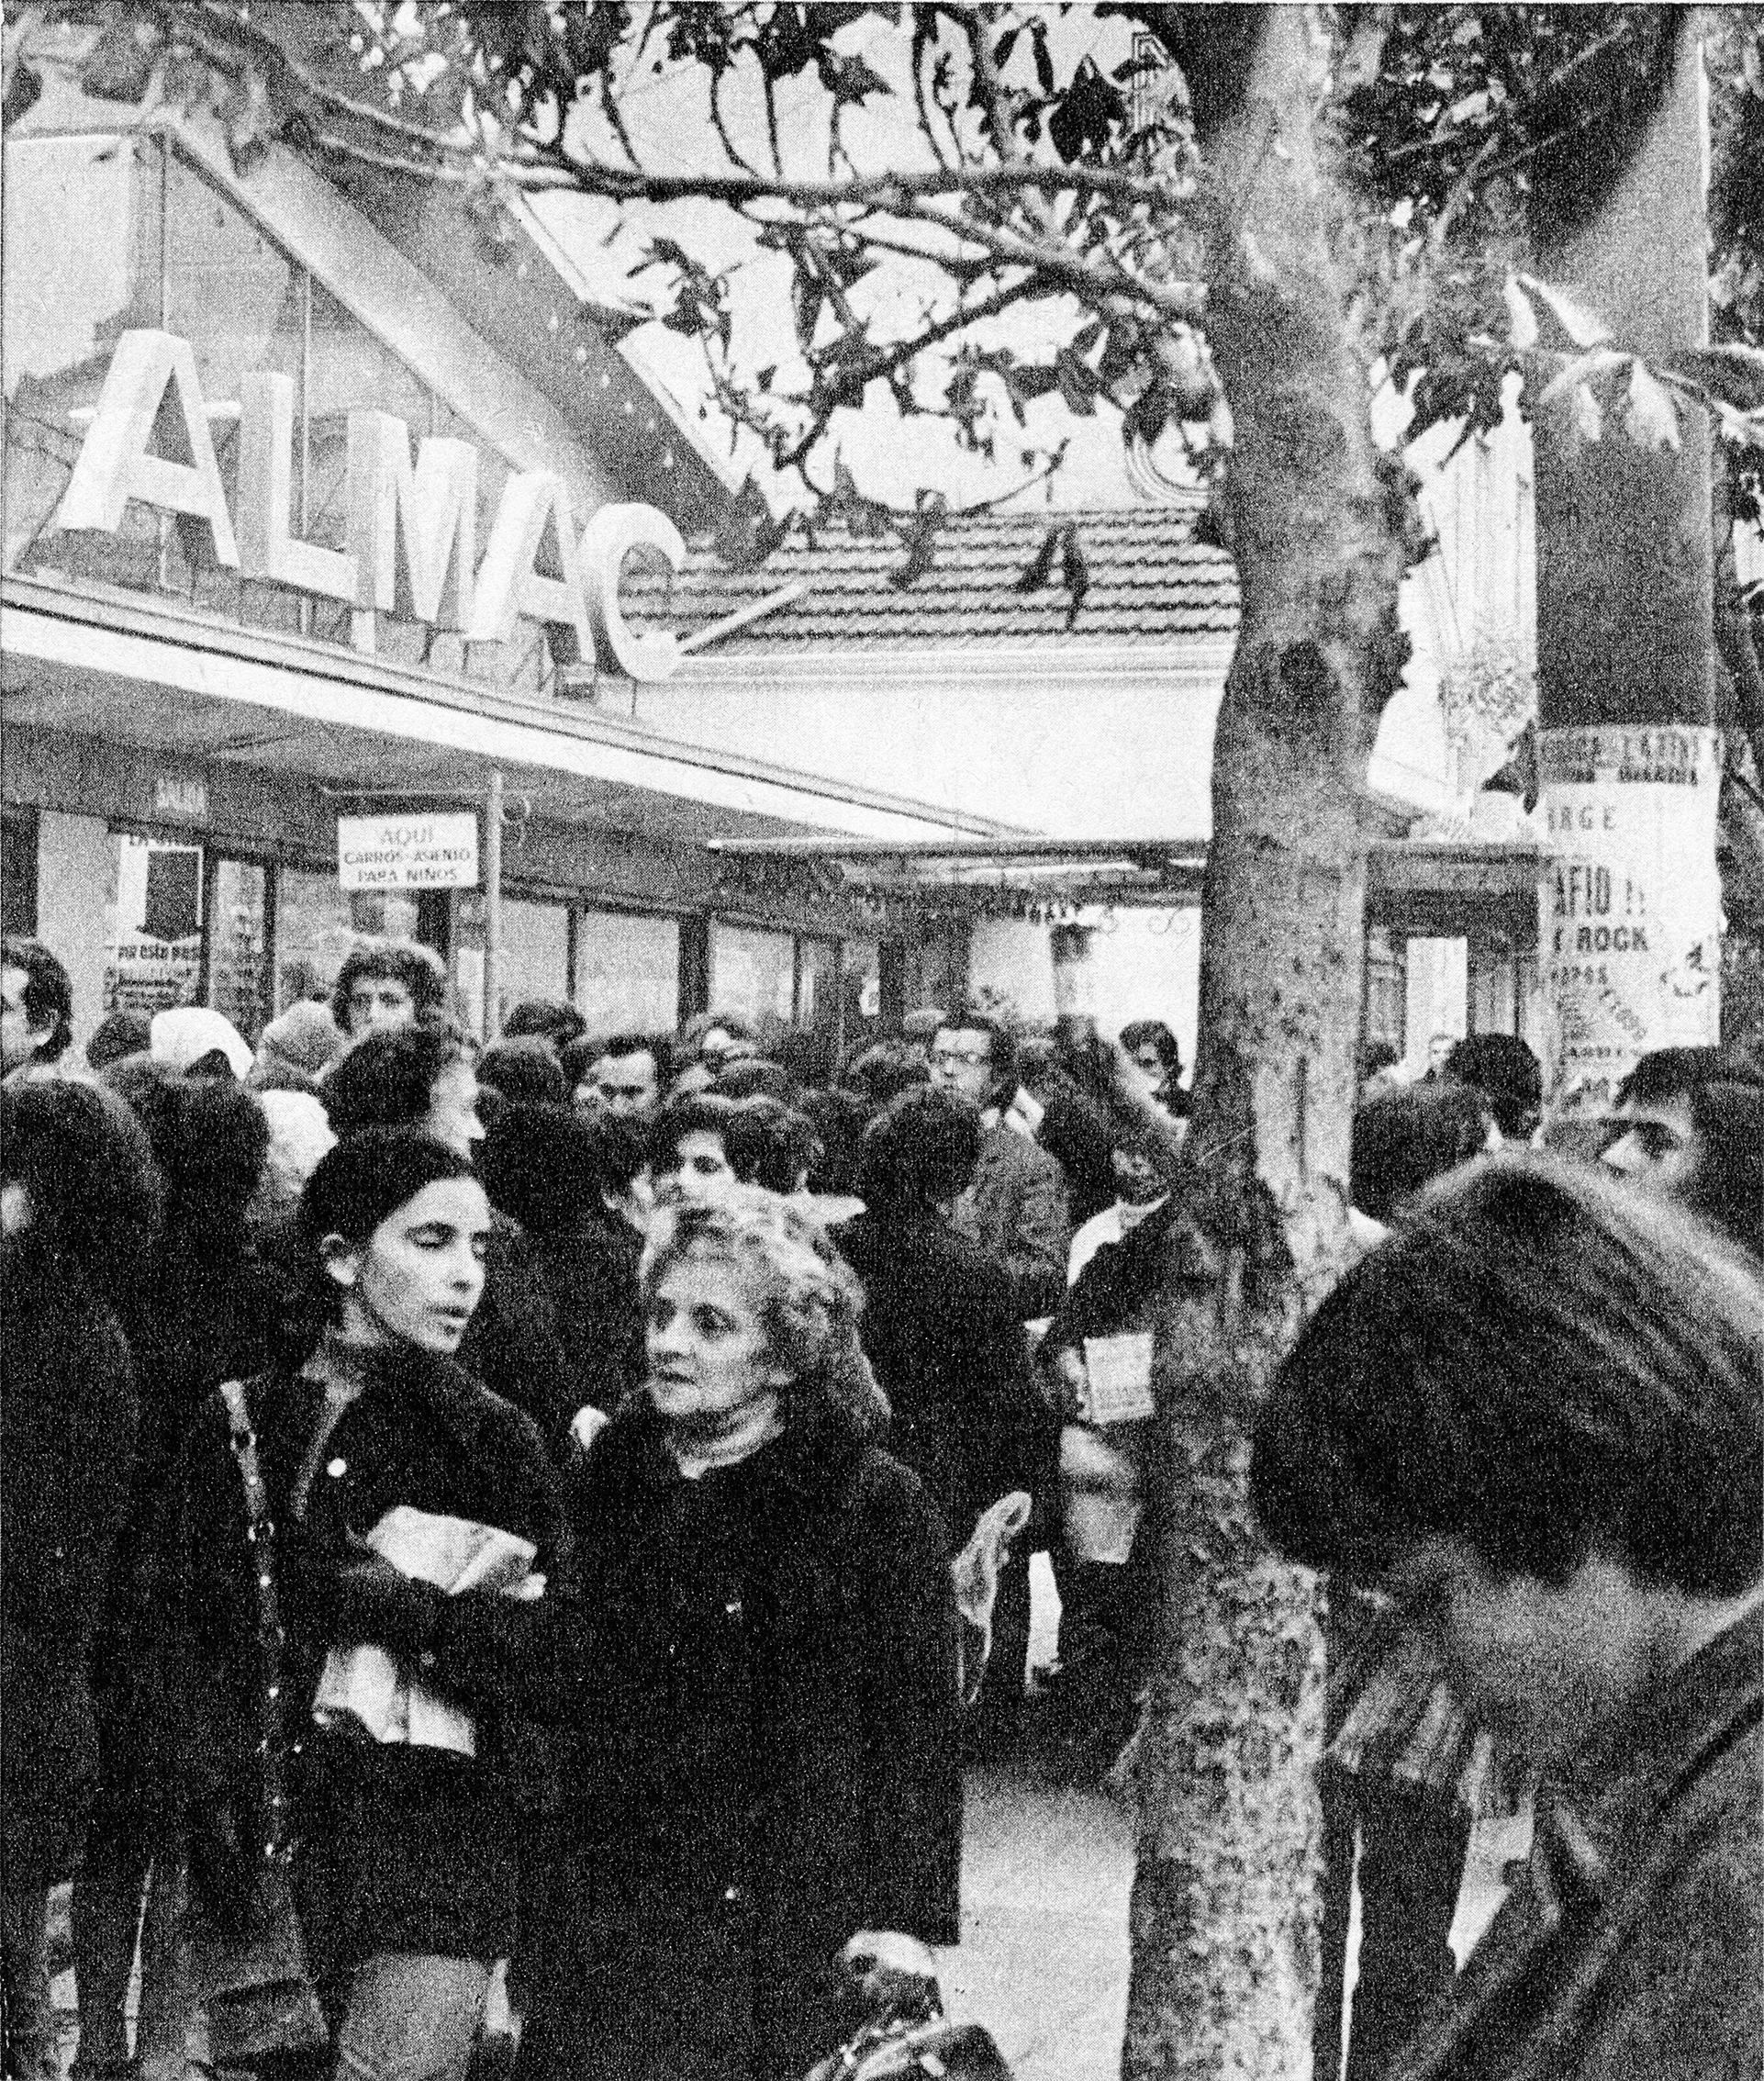 Enterreno - Fotos históricas de chile - fotos antiguas de Chile - Marcha de mujeres 1971